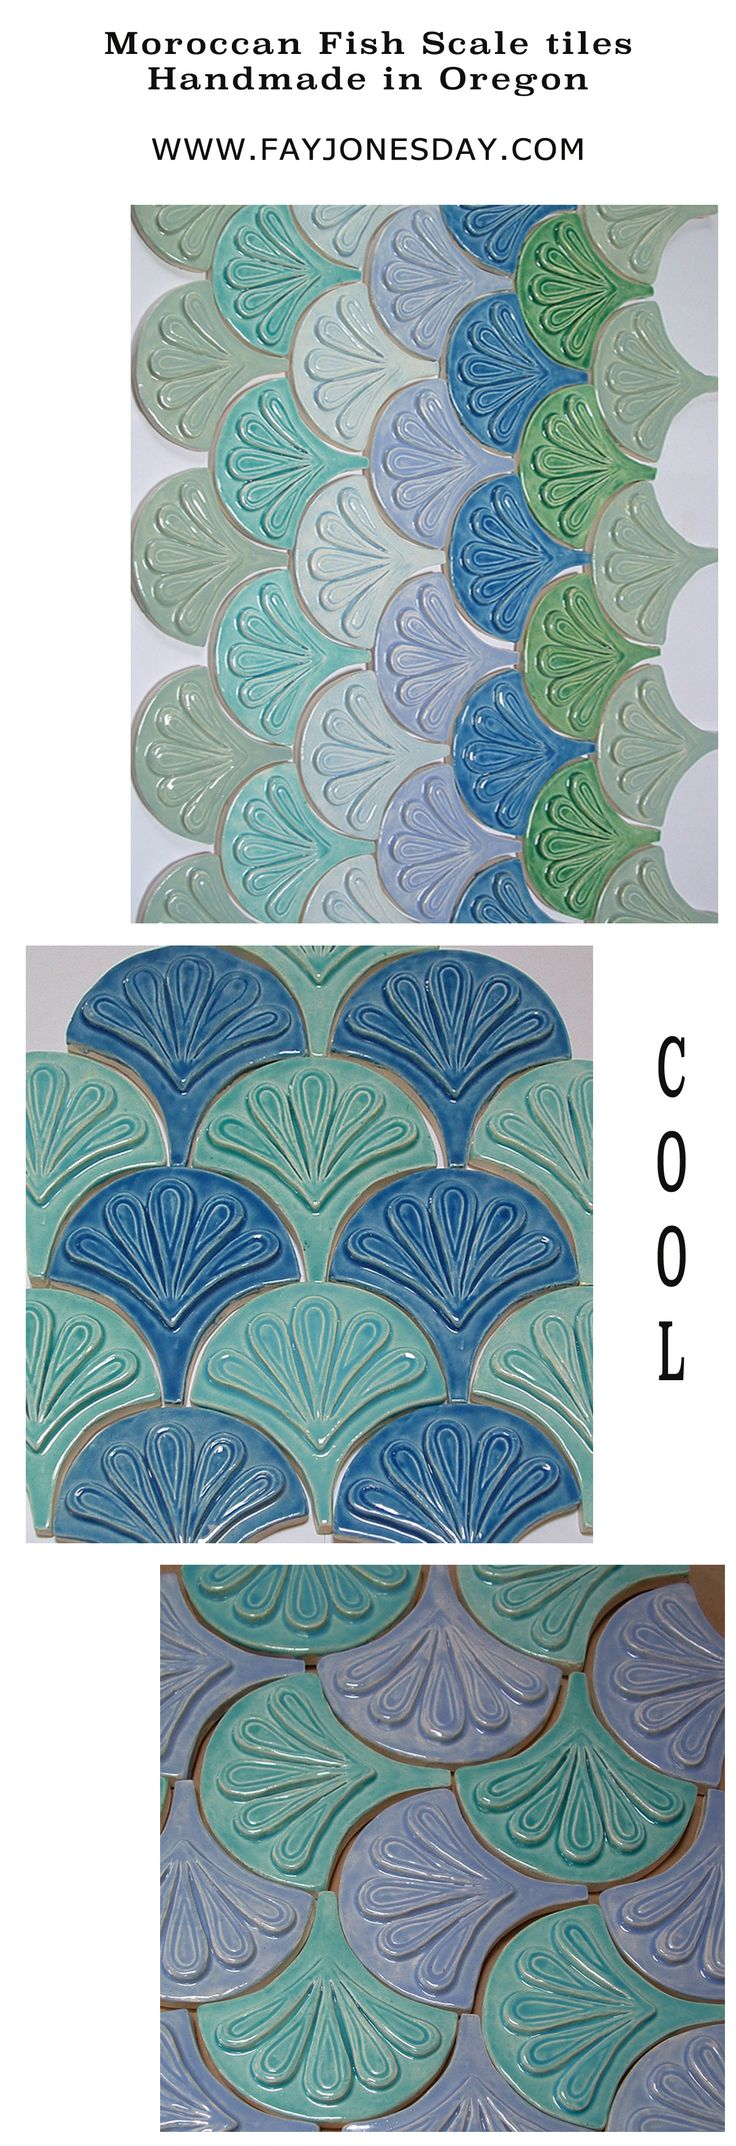 54 best Ceramics - Tiles images on Pinterest | Clay tiles, Tiles and ...